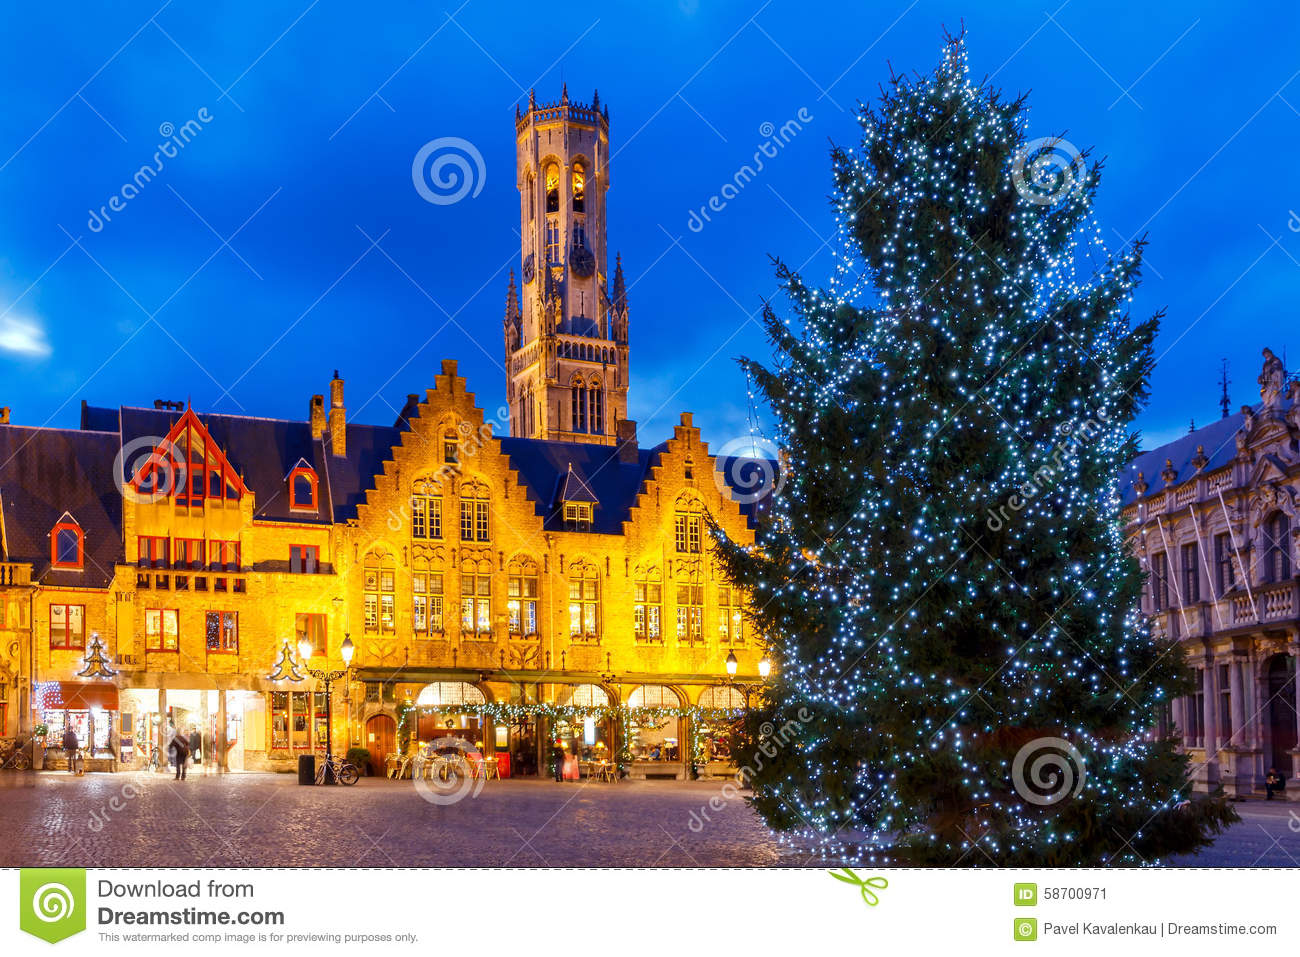 Bruges Christmas.Bruges Burg Square With The Christmas Tree At Christmas